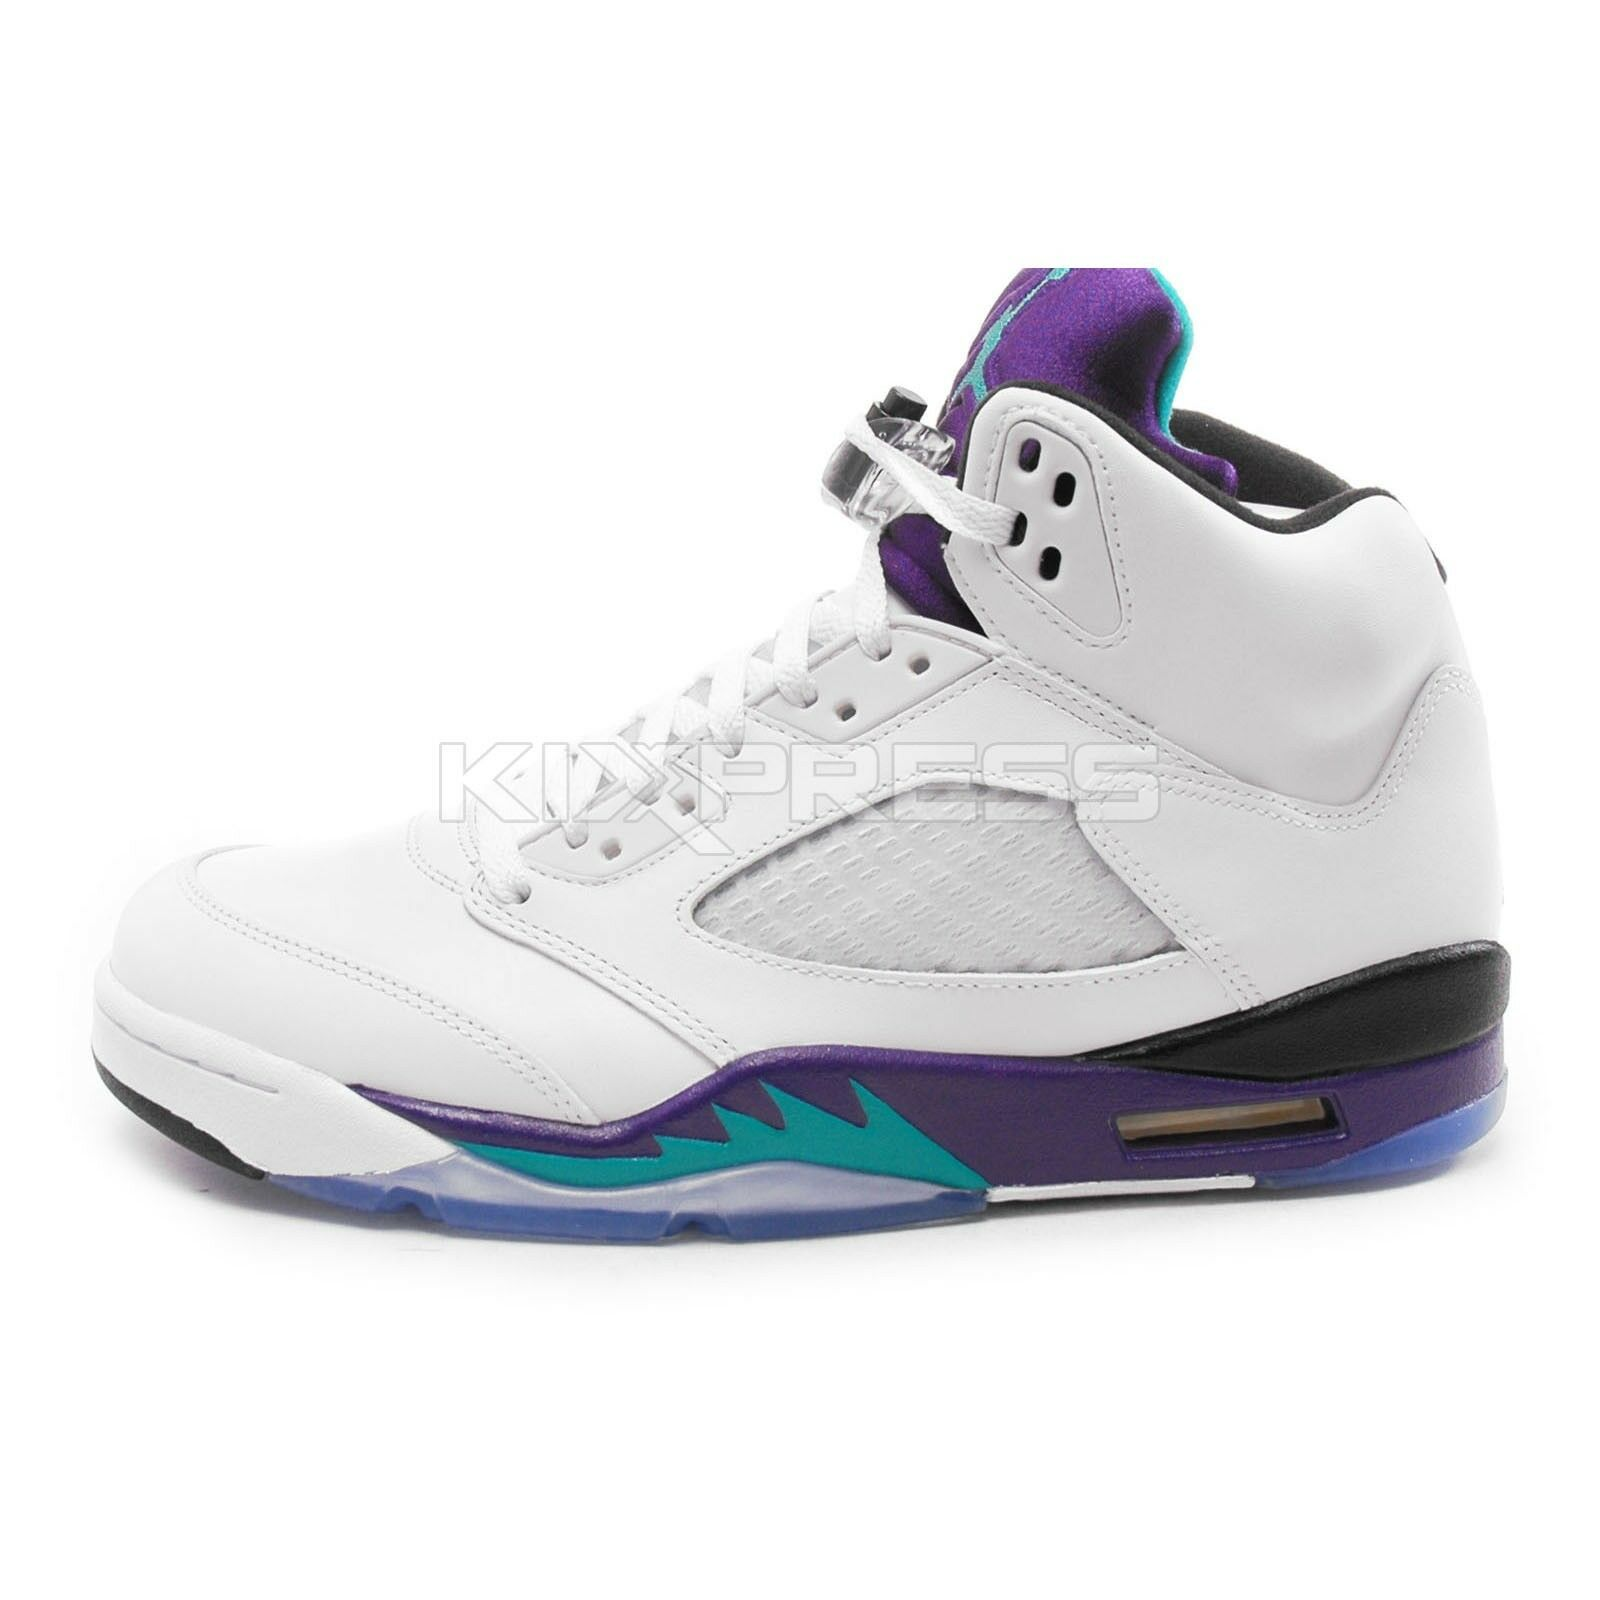 Nike Air Jordan 5 Retro Price reduction Basketball White/New Emerald-Grape Ice Special limited time